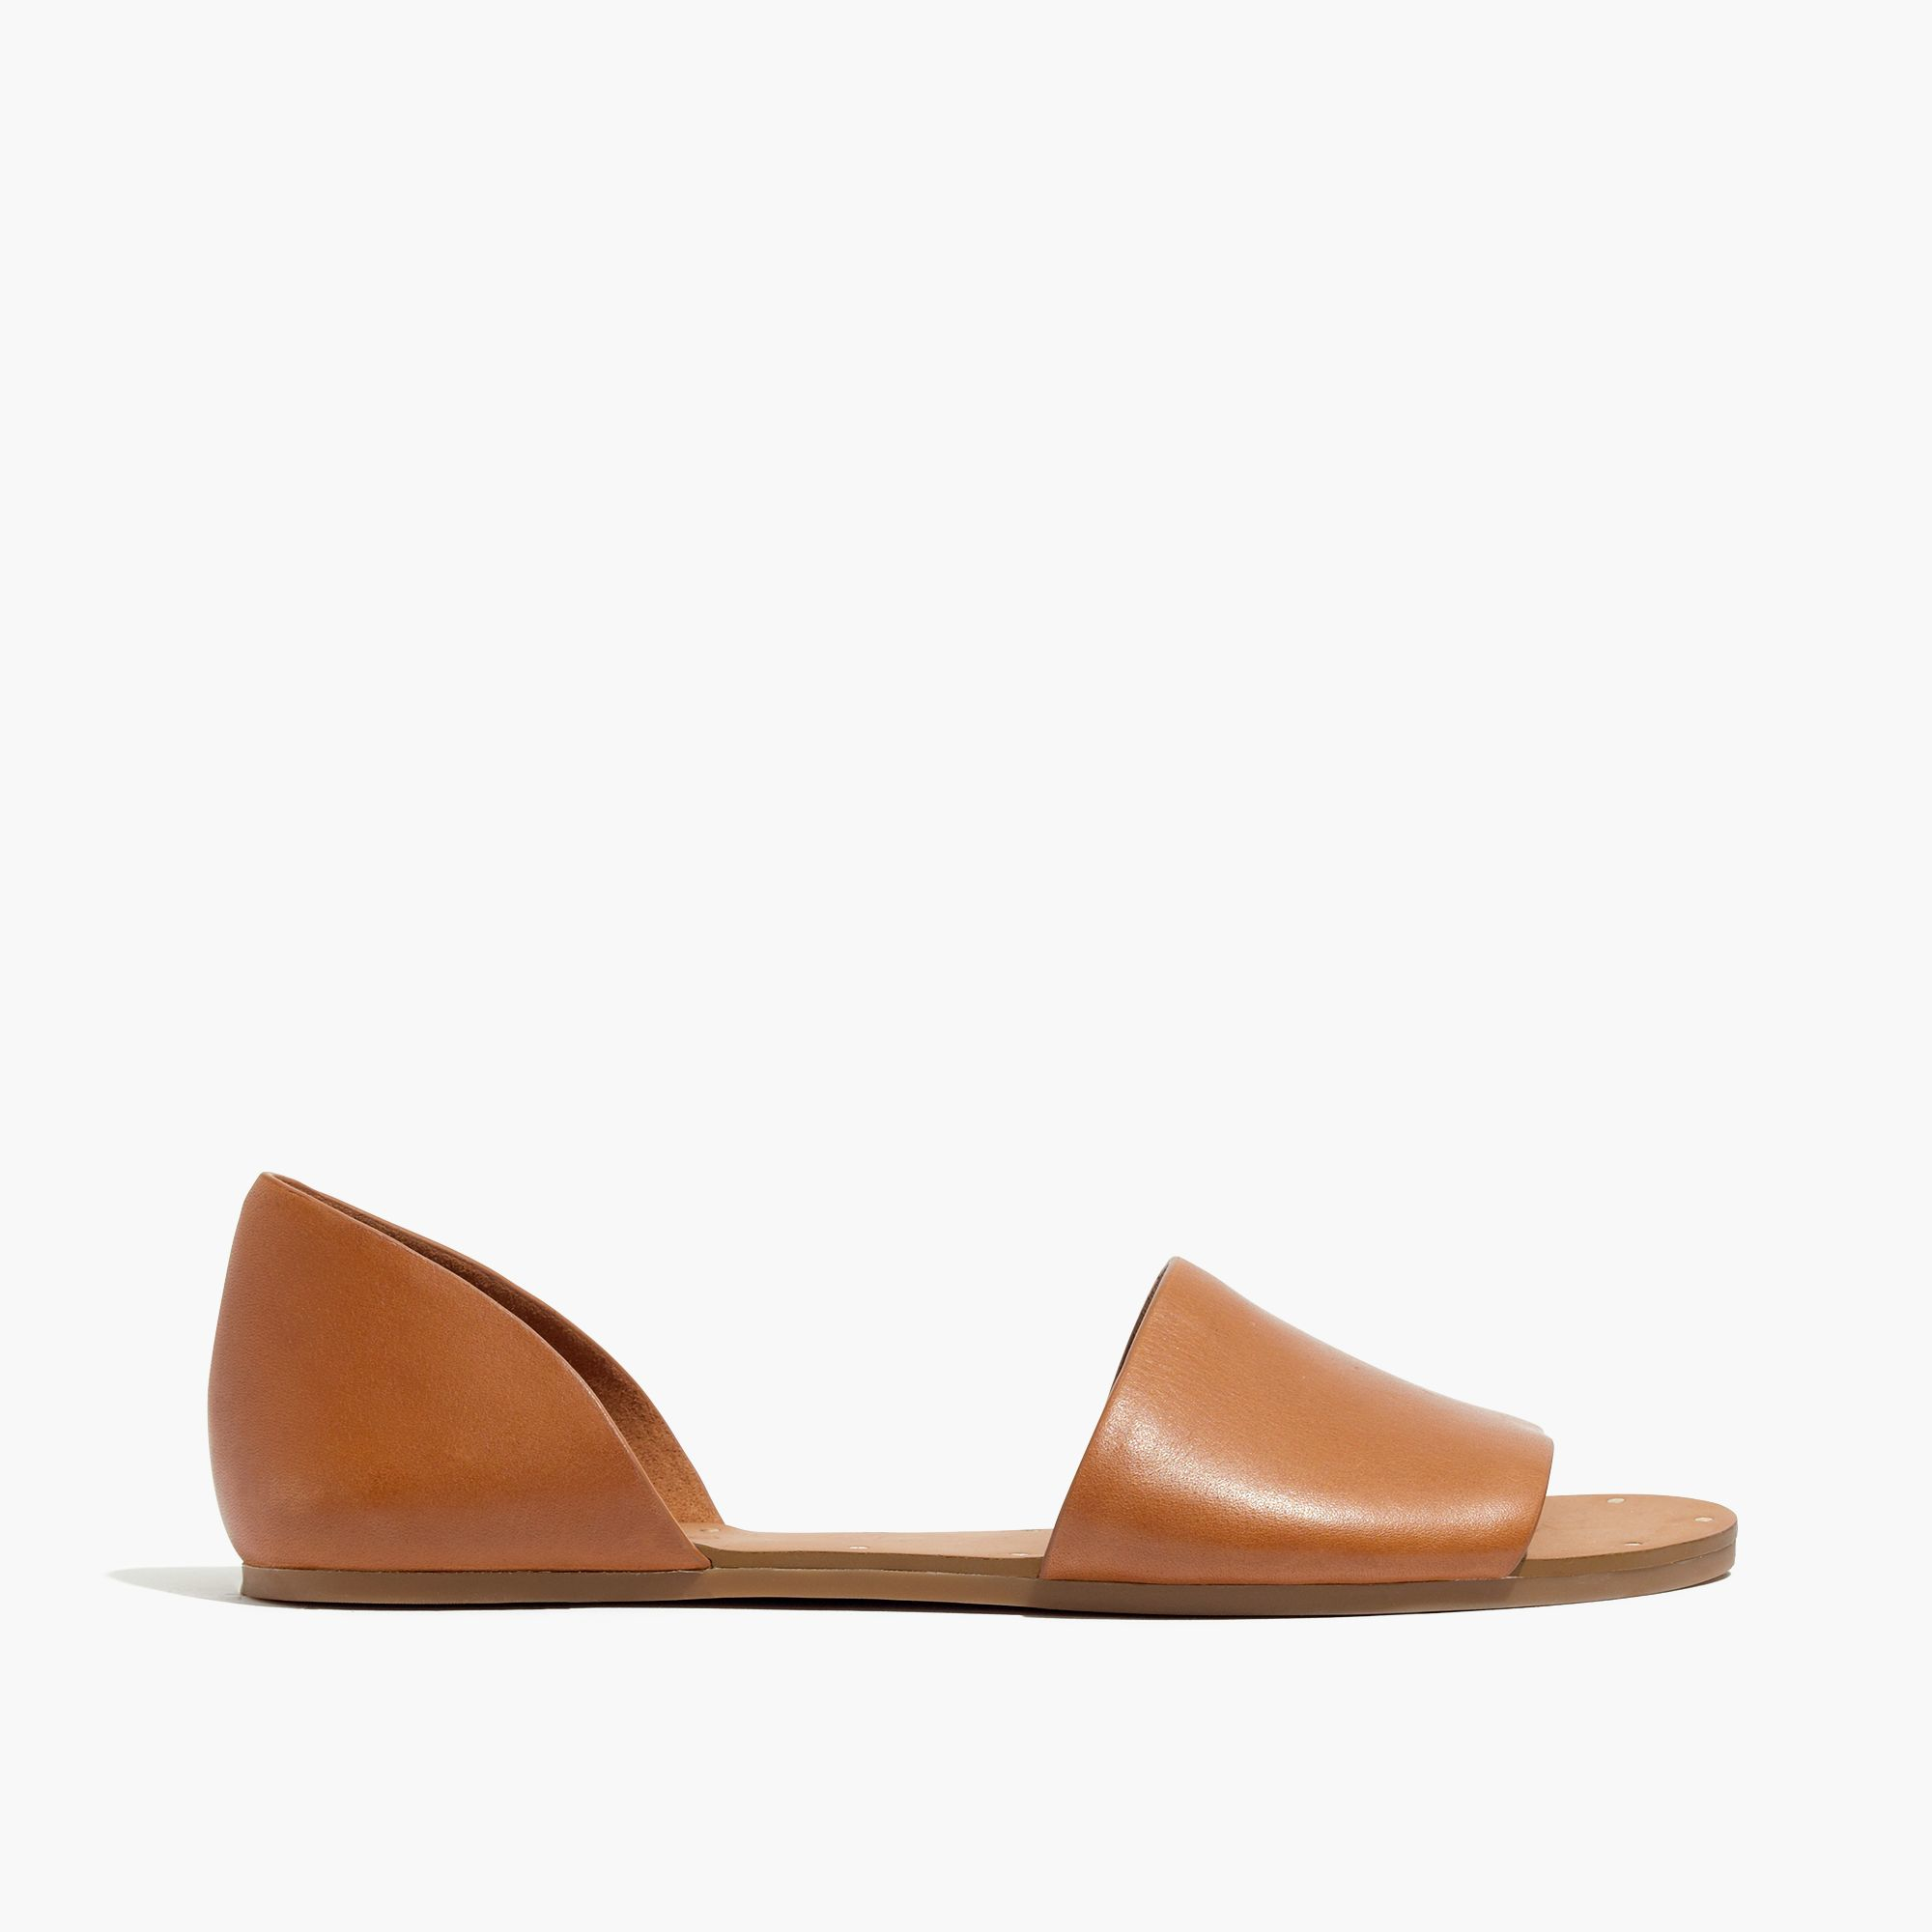 a0c3f2bf1da1b Madewell The Thea Sandal In Leather in Natural - Lyst